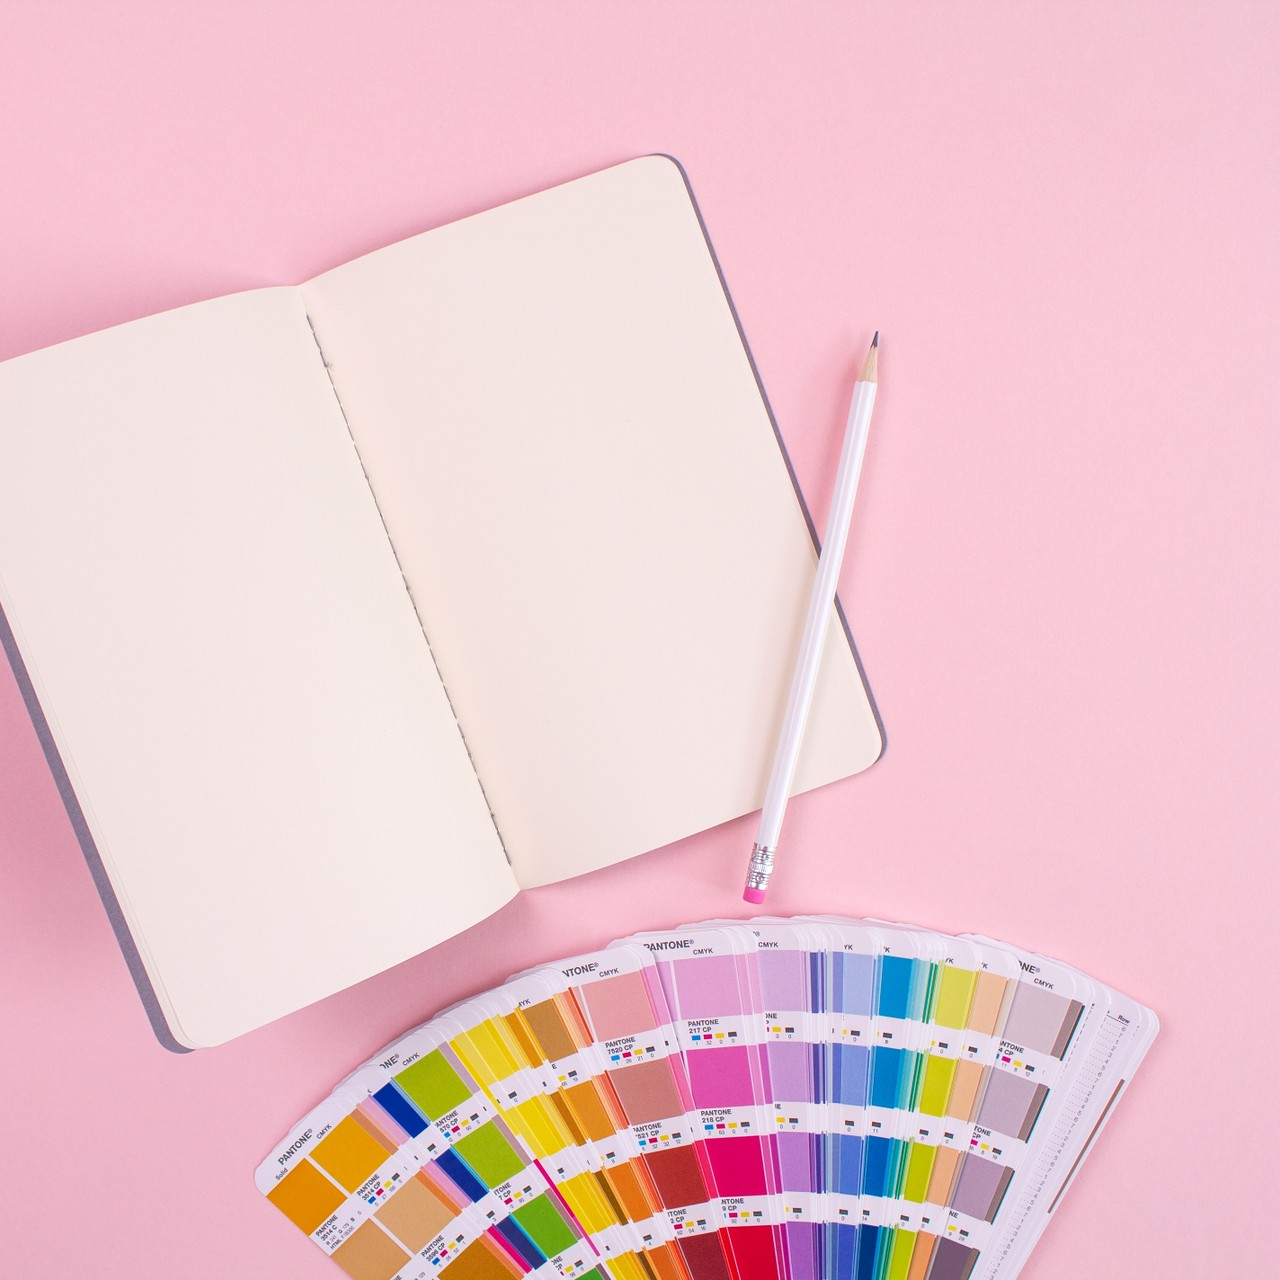 How to Learn UX Design and Become a Self-Taught User Experience Designer